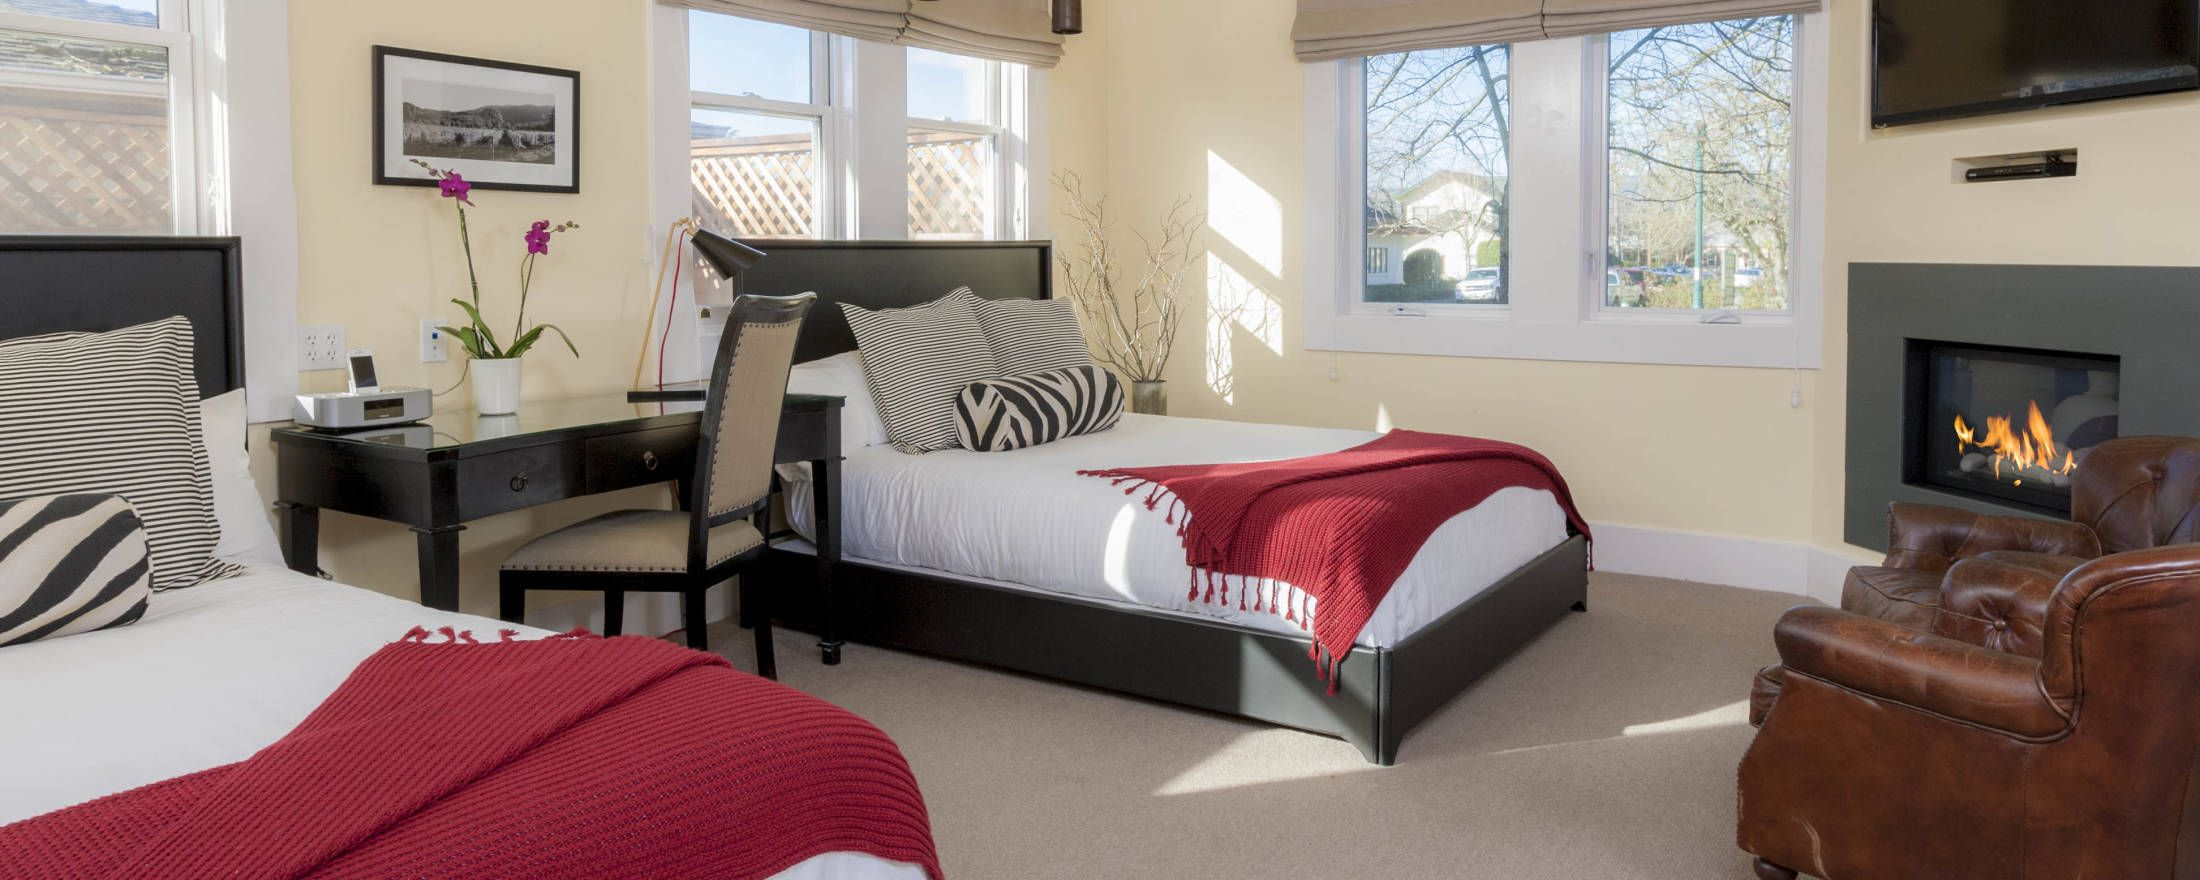 Vintners Double Queen Guestroom at Inn at Sonoma Bed and